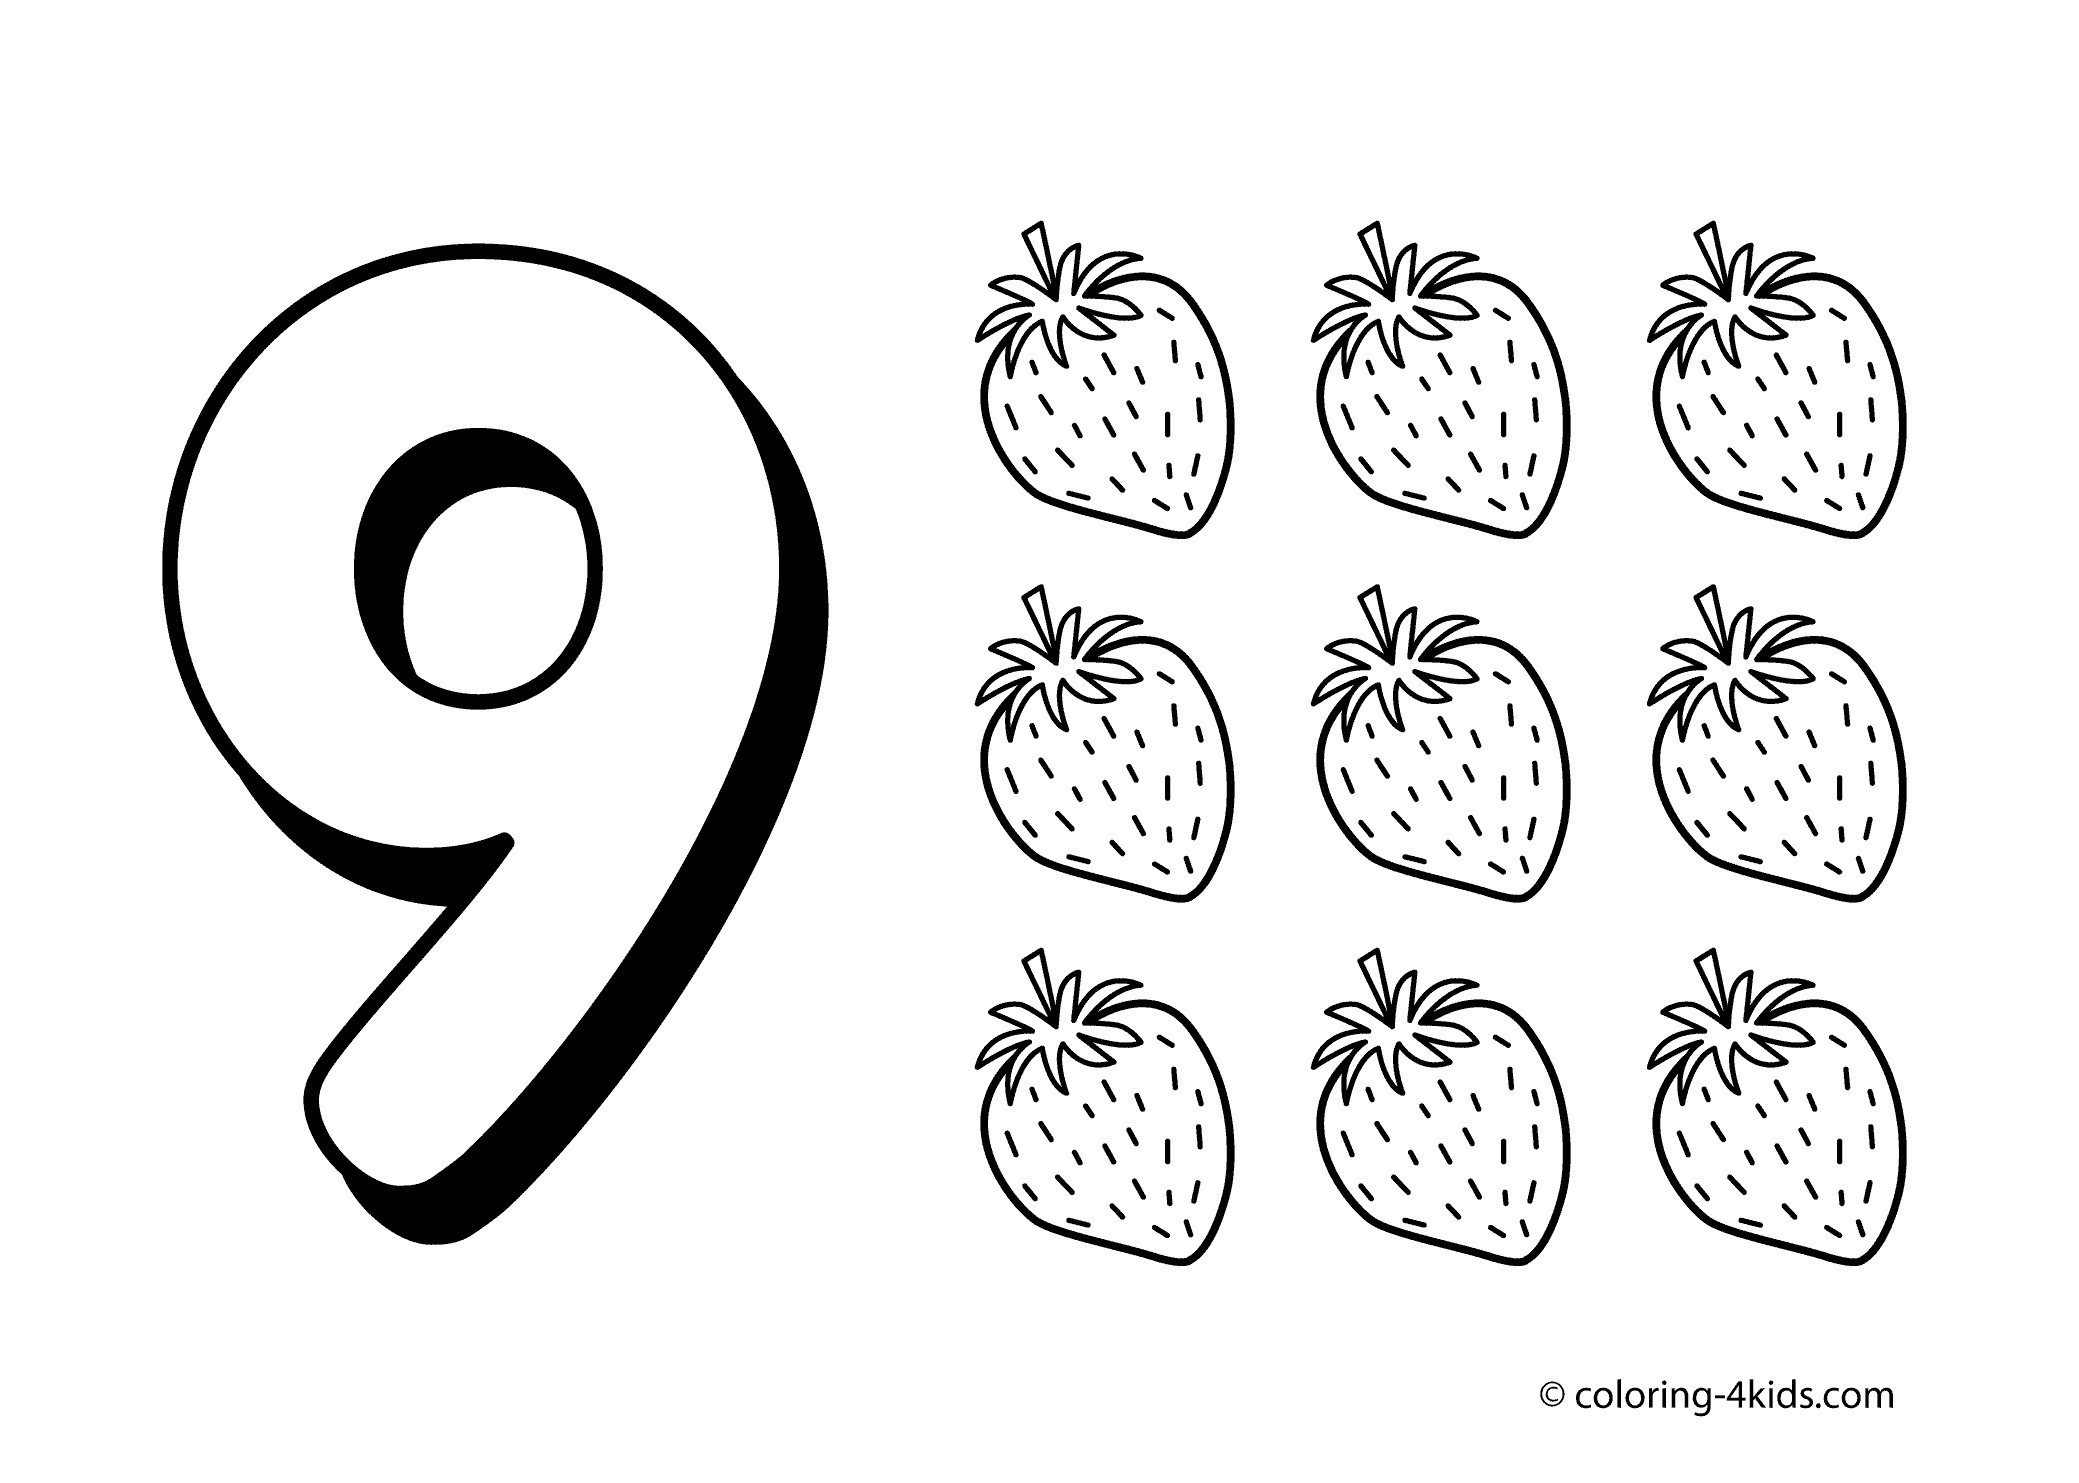 coloring number for preschool number coloring numbers preschool preschool worksheets number preschool coloring for